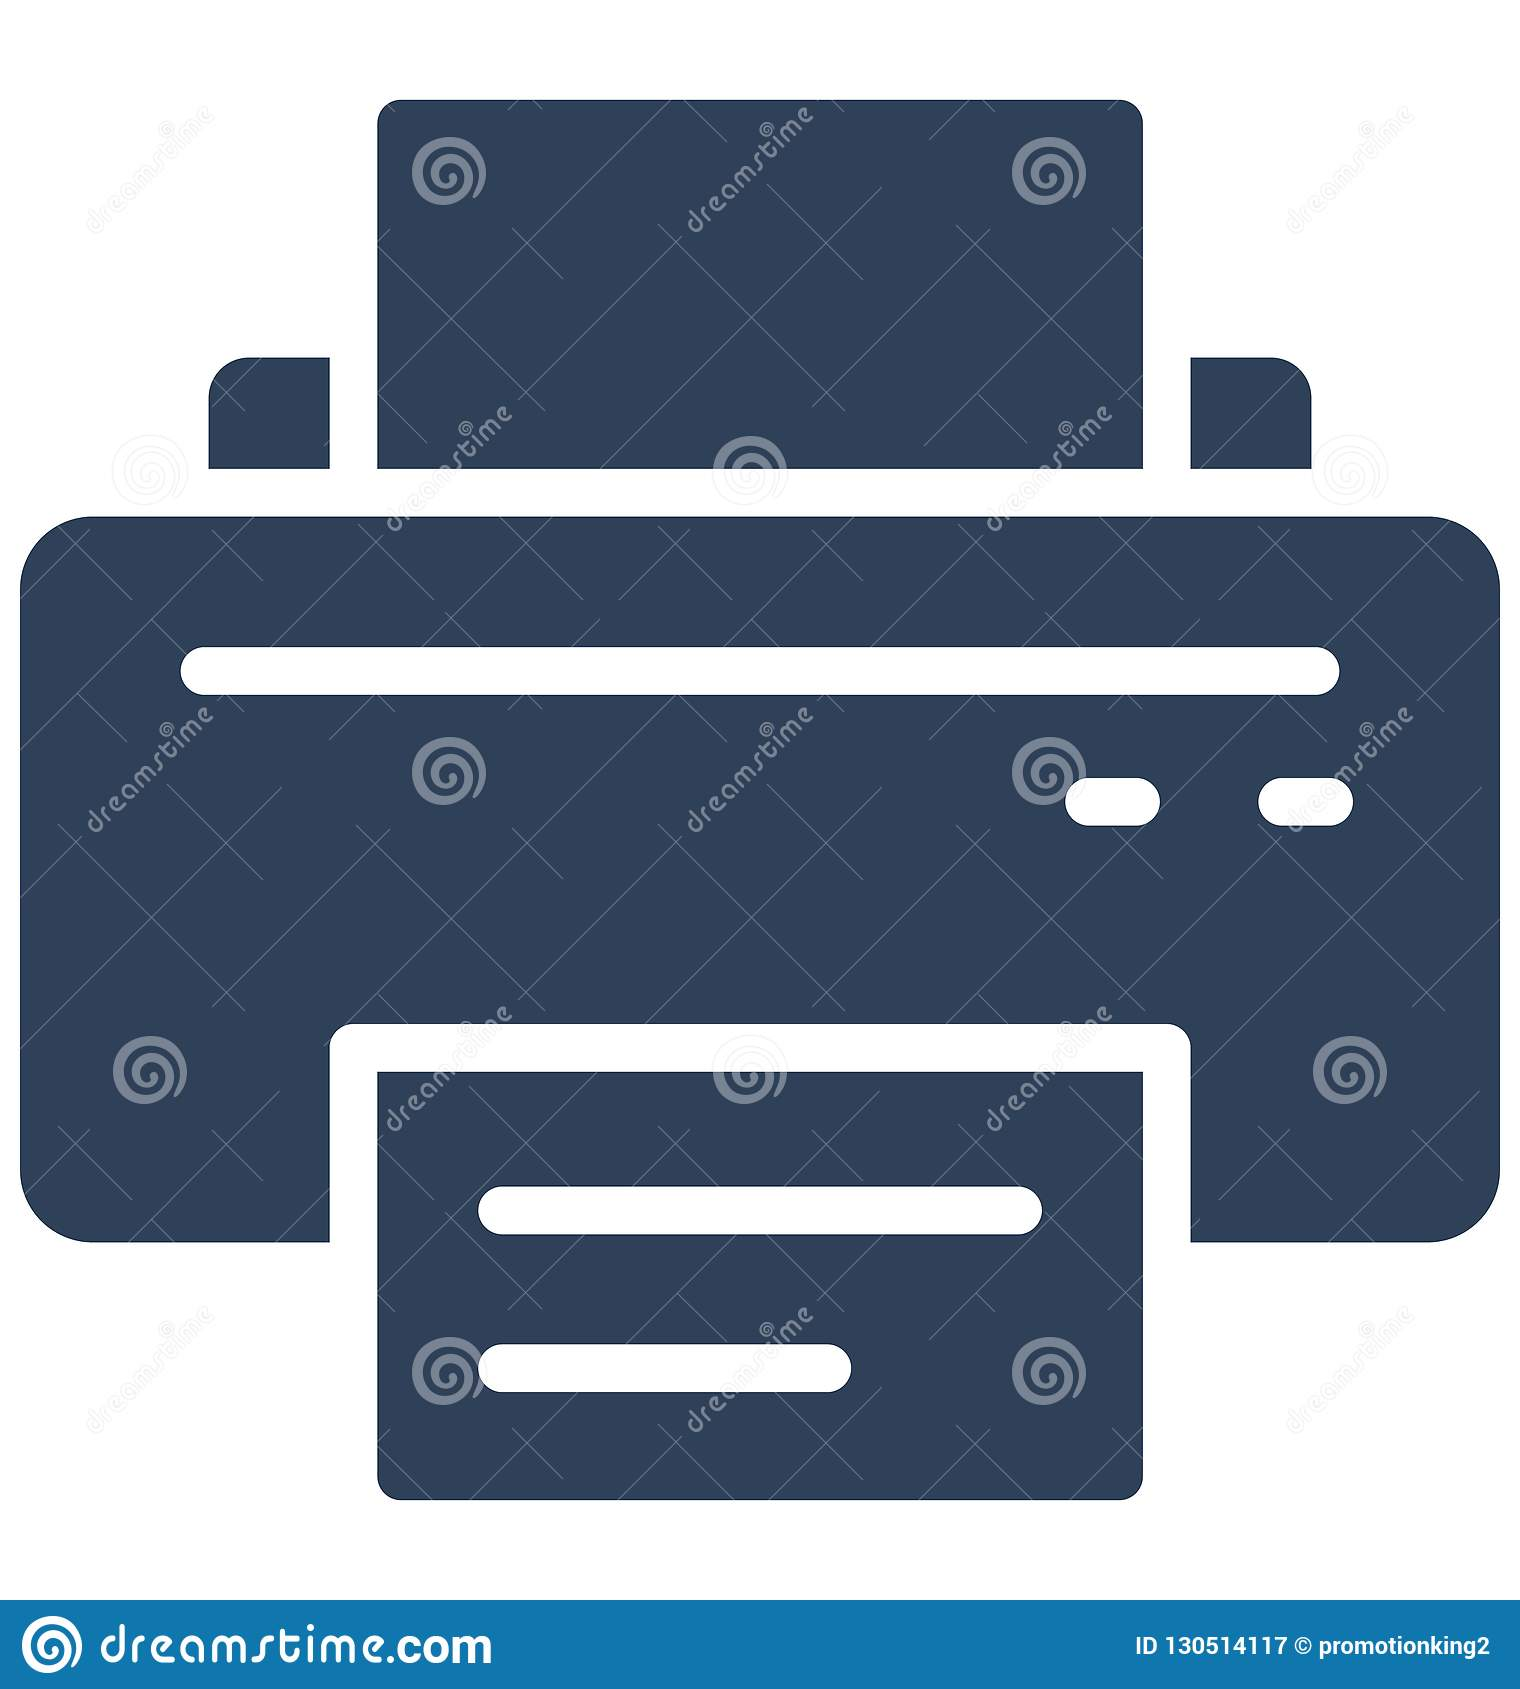 Fax, inkjet printers Isolated Vector Icon That can be easily edited in any size or modified.